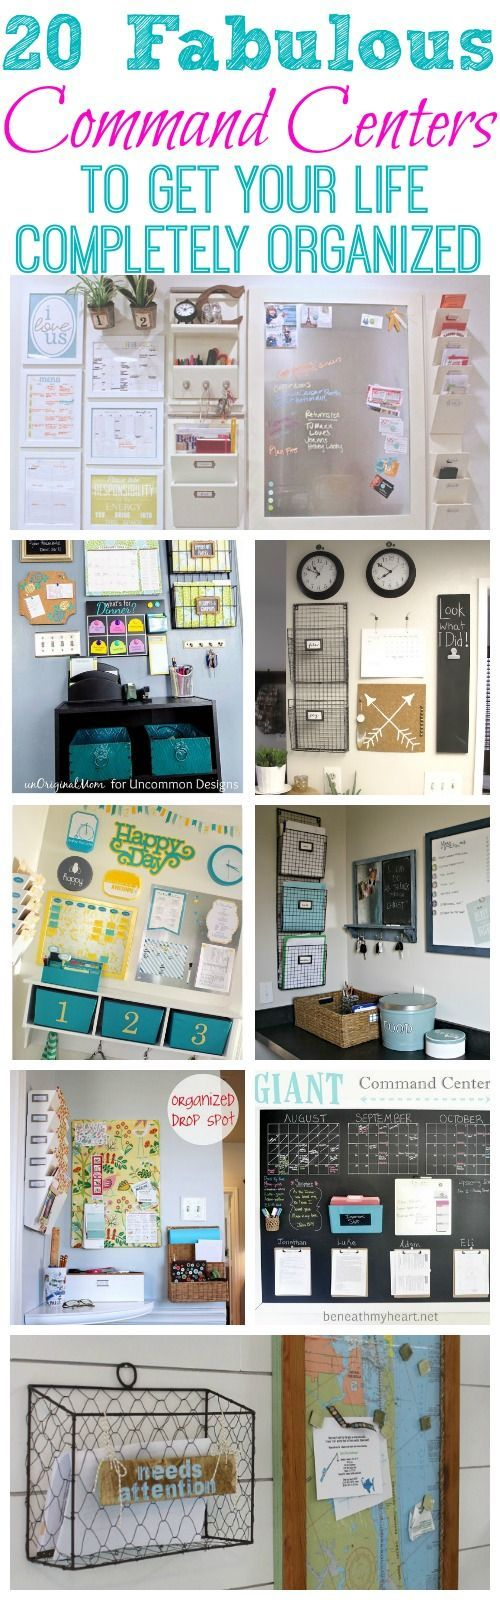 20 Fabulous Command Centers to Get Your Life Completely Organized! Organization Tips and Tricks!